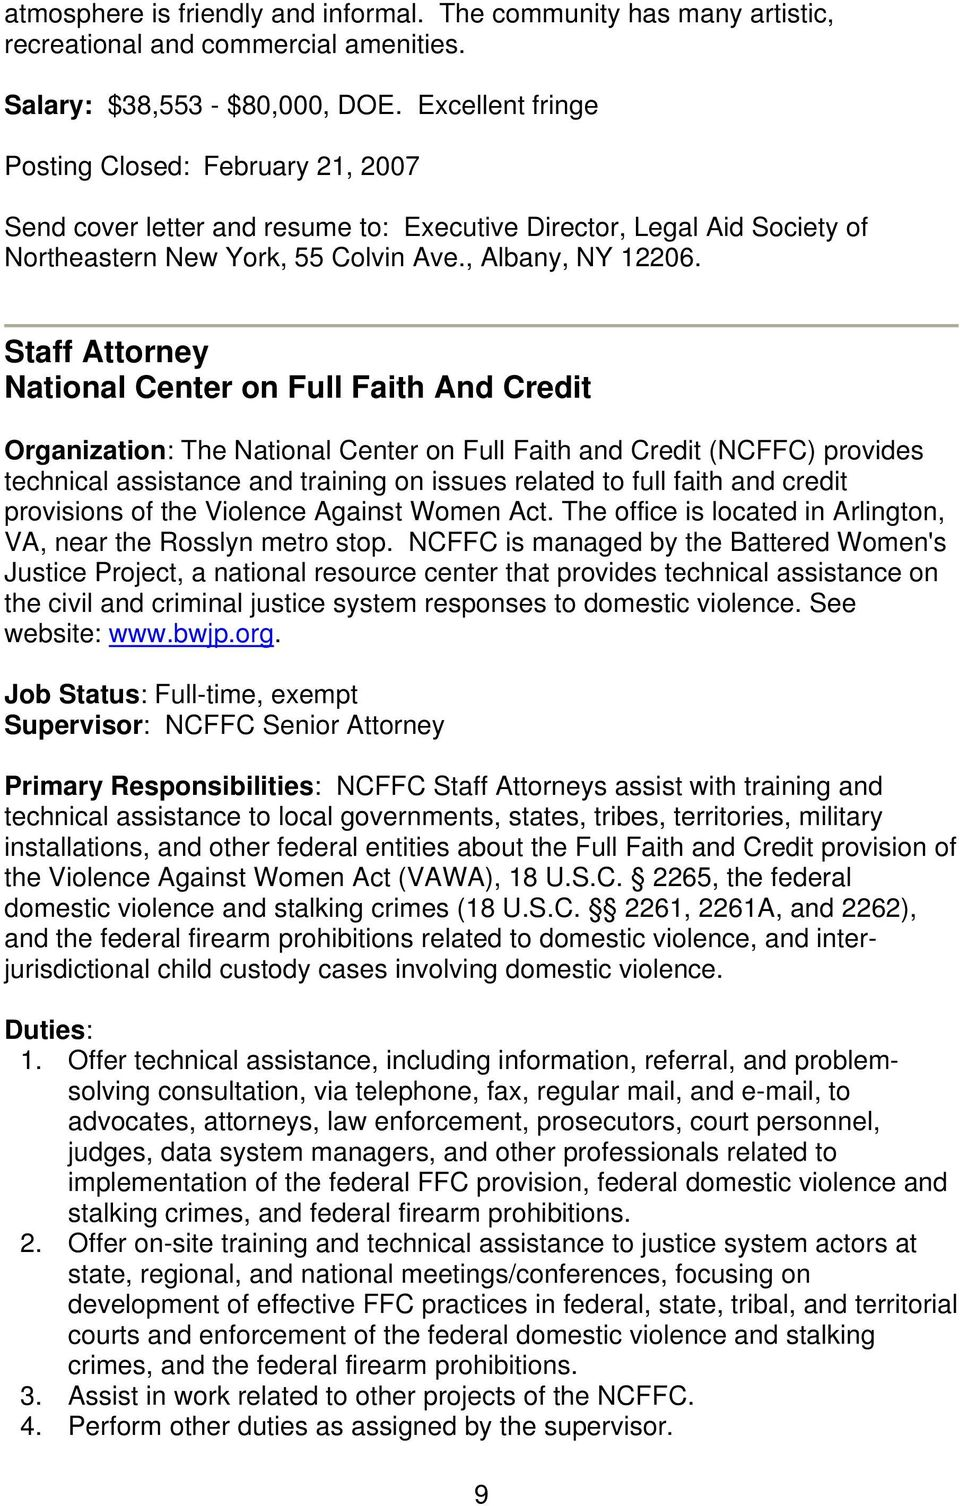 Staff Attorney National Center on Full Faith And Credit Organization: The National Center on Full Faith and Credit (NCFFC) provides technical assistance and training on issues related to full faith